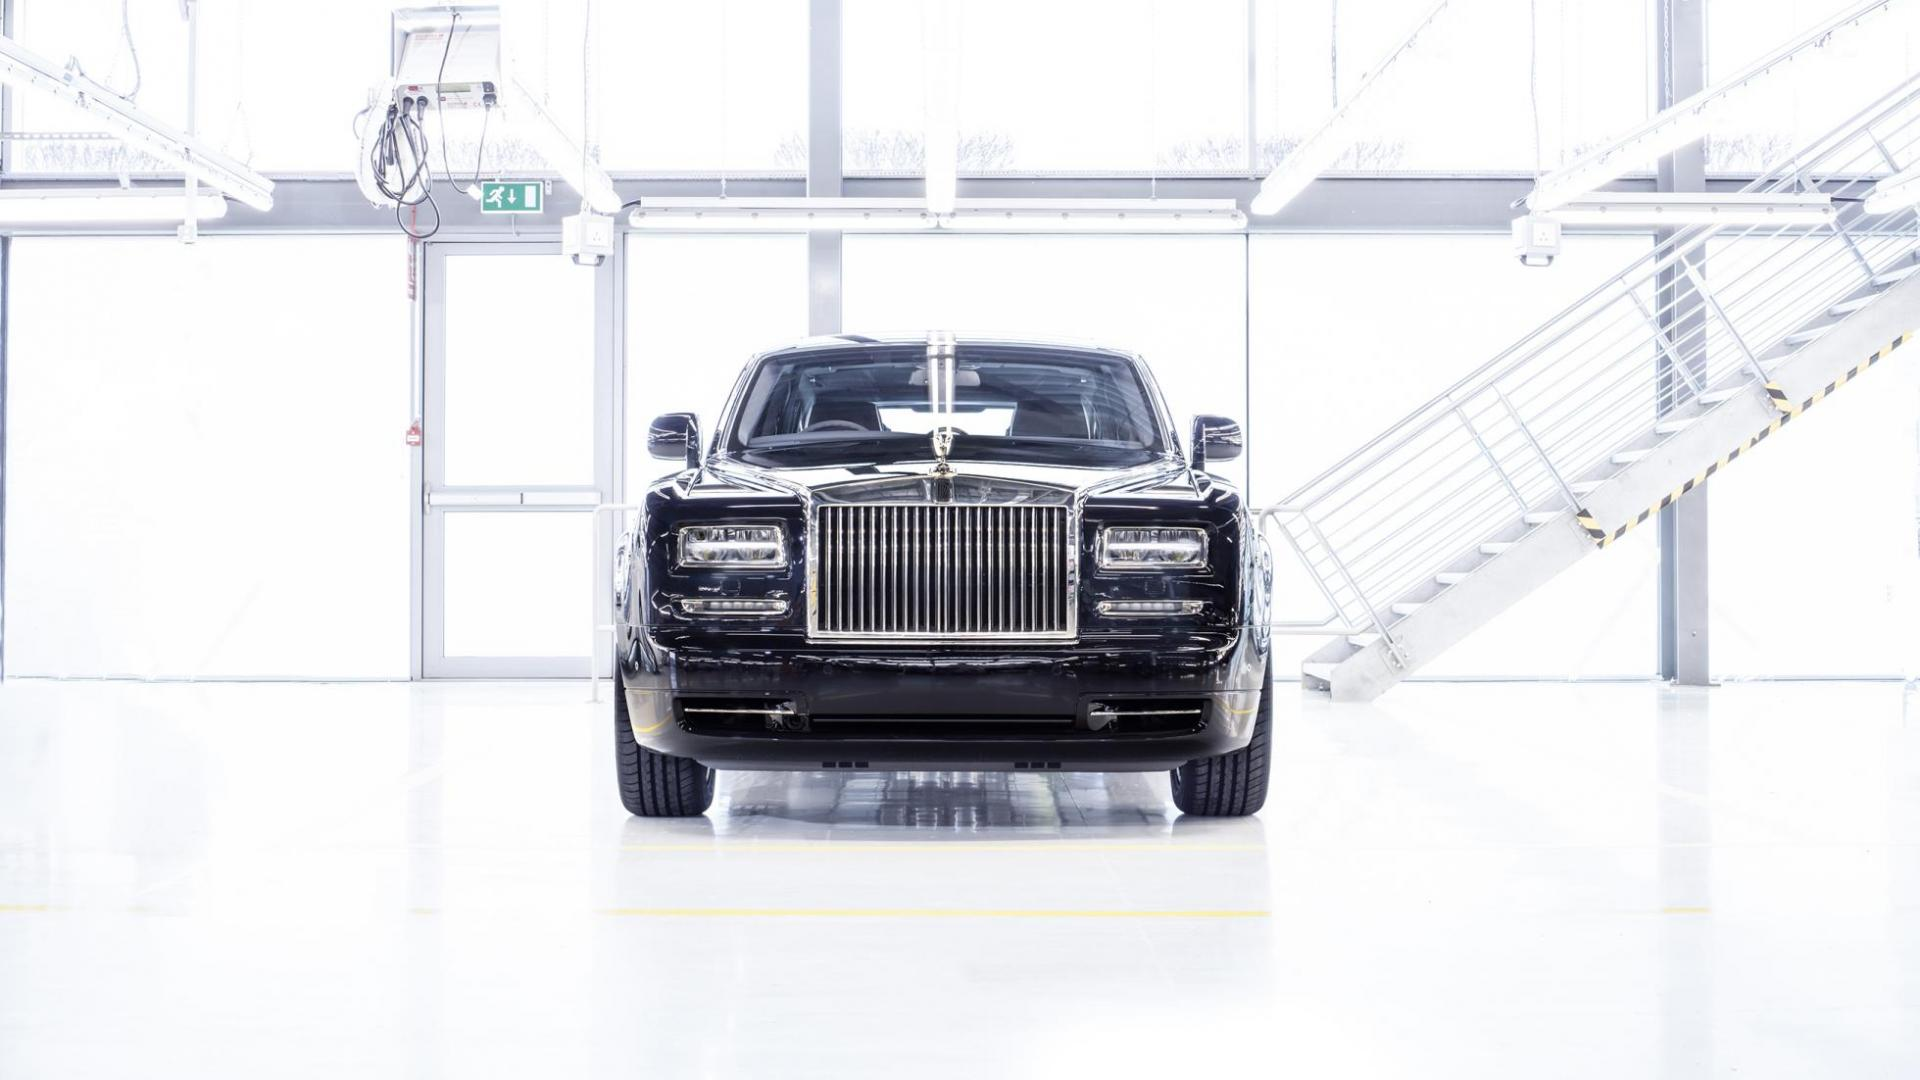 Tweedehands Rolls-Royce Phantom